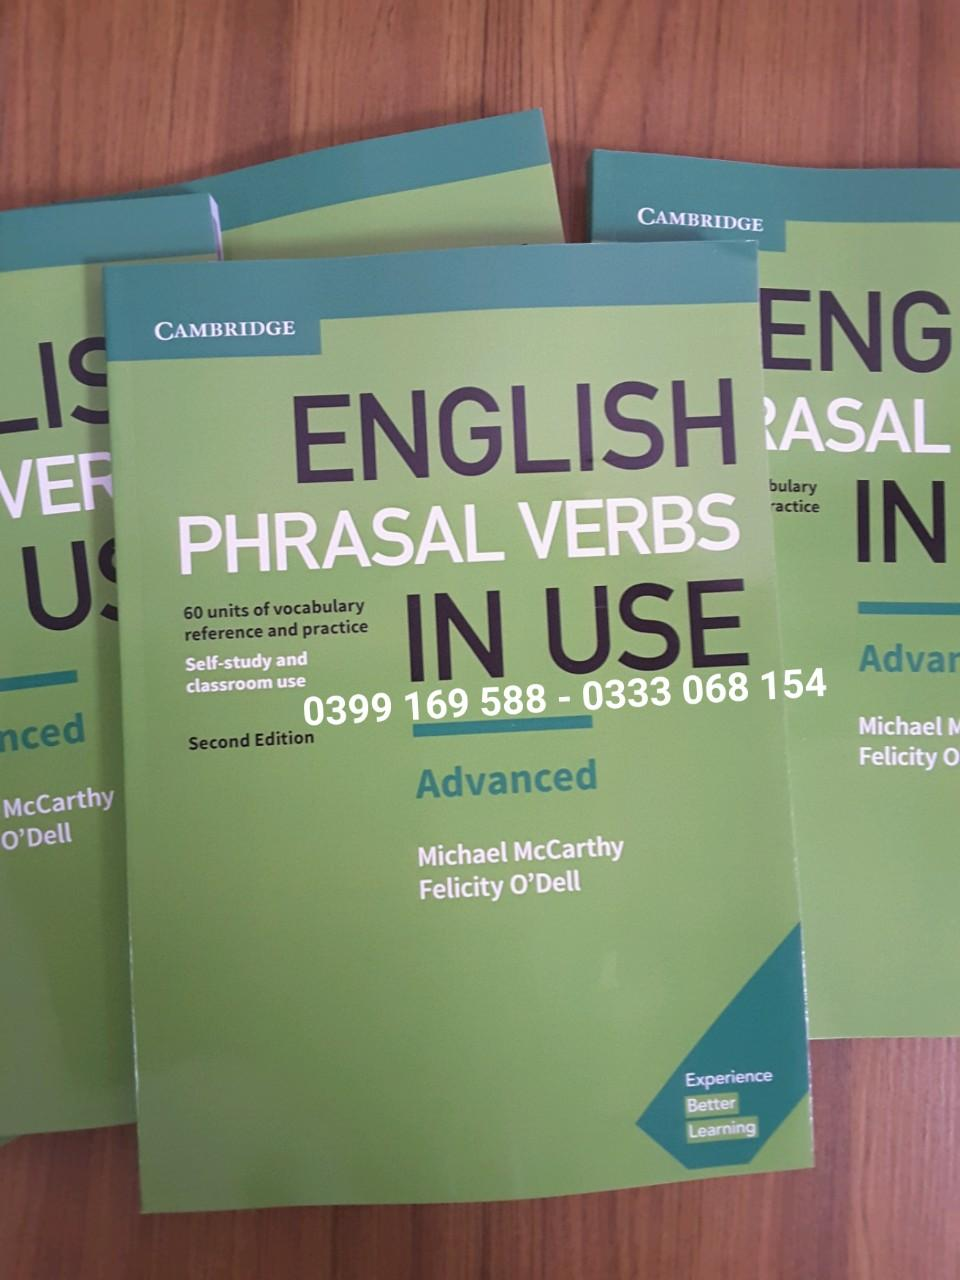 Cambridge English Phrasal Verbs In Use Advanced 2nd Edition With Answer Có Giá Siêu Tốt